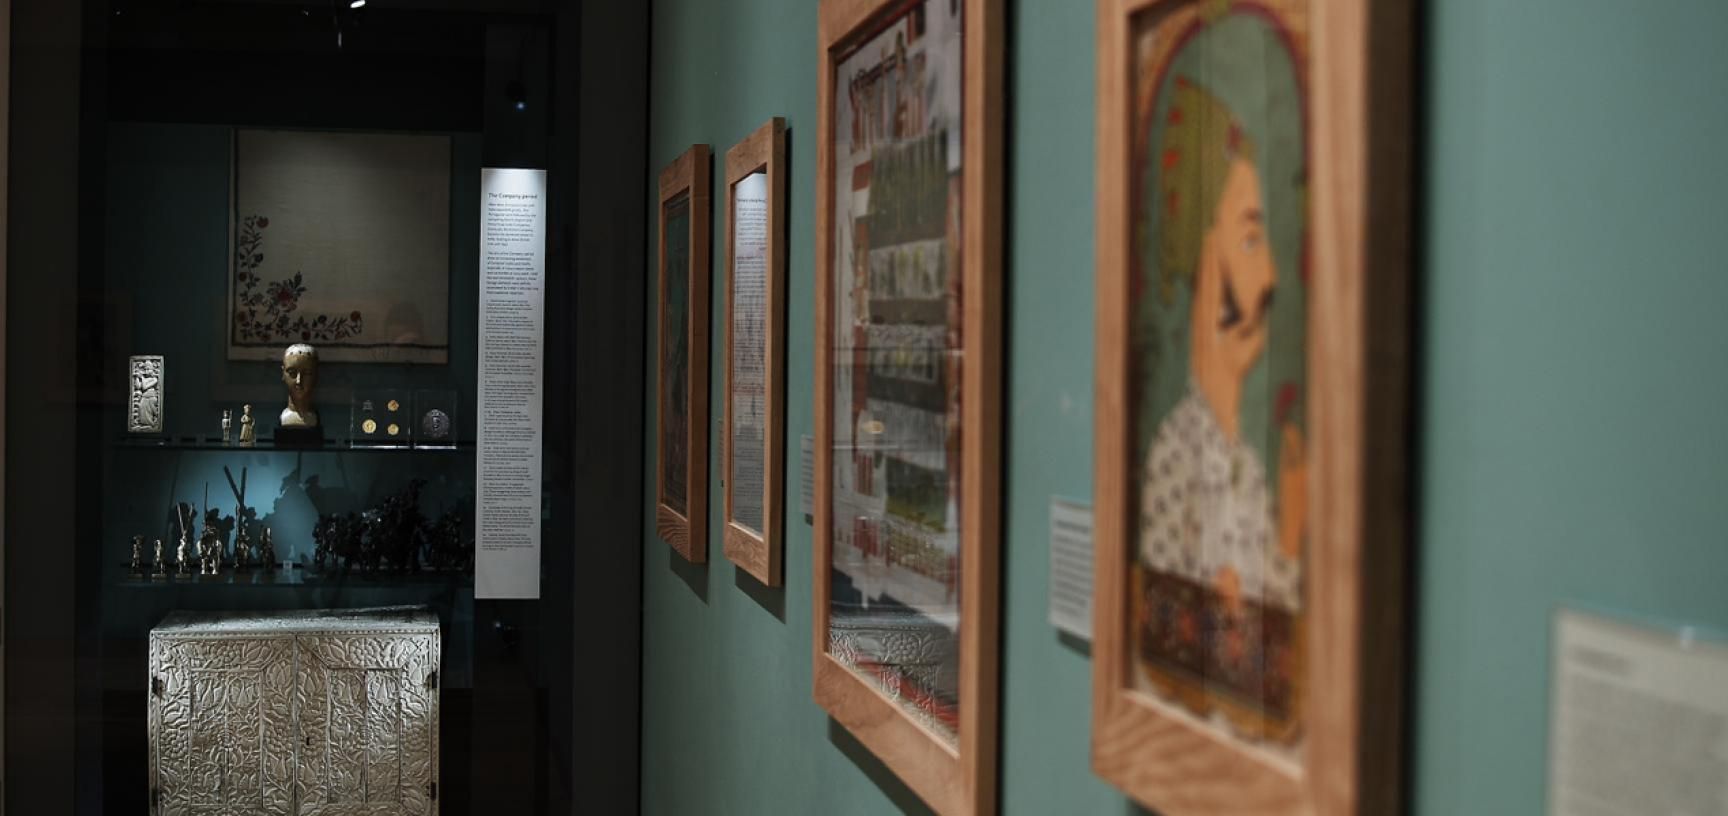 The Mughal India Gallery at the Ashmolean Museum